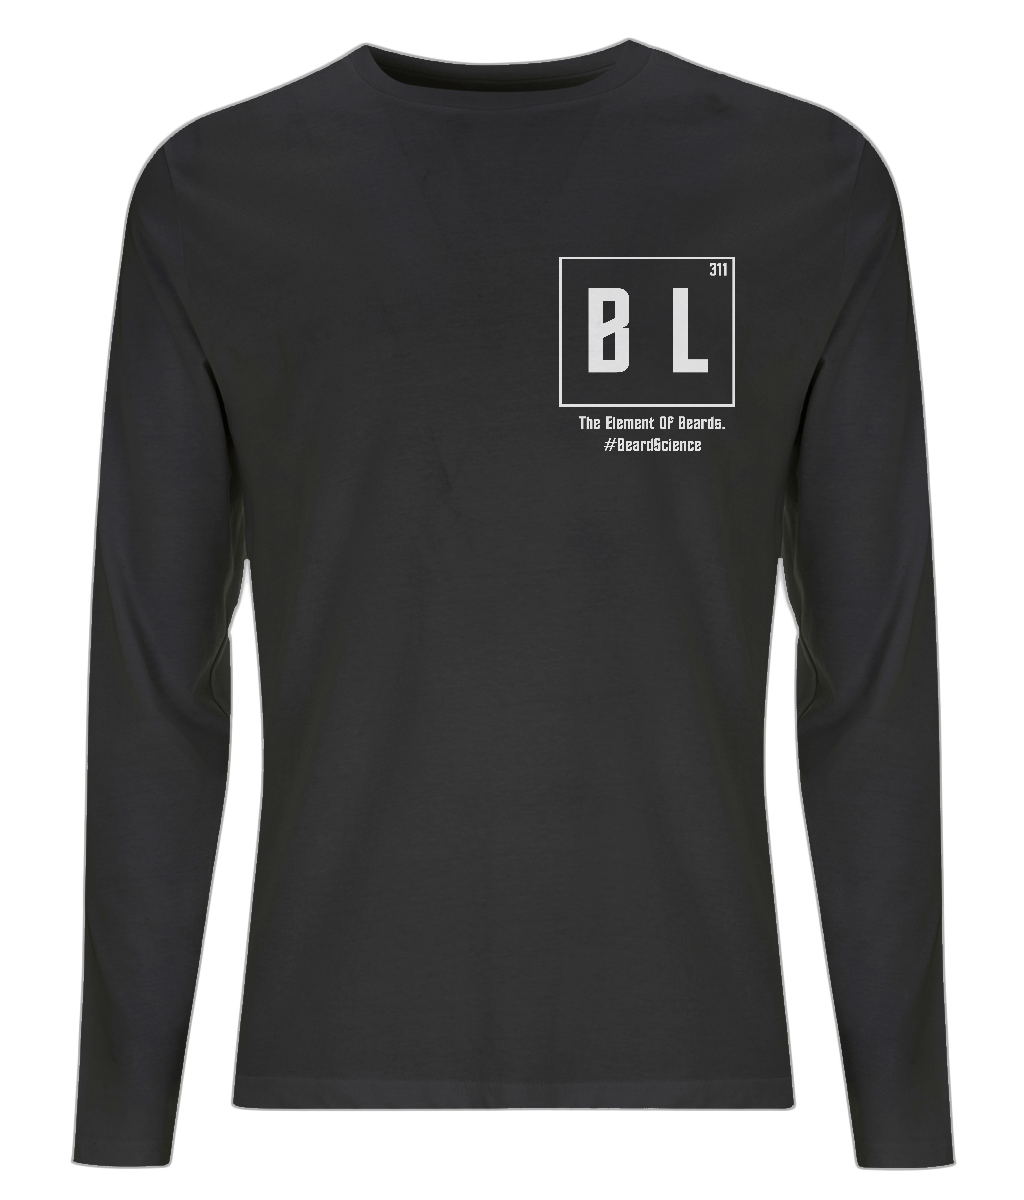 Long Sleeve BL Shirt - BeardLab Clothing - Beard Oil UK, Beard Care BeardLab - UK Beard Oil - Beard Products